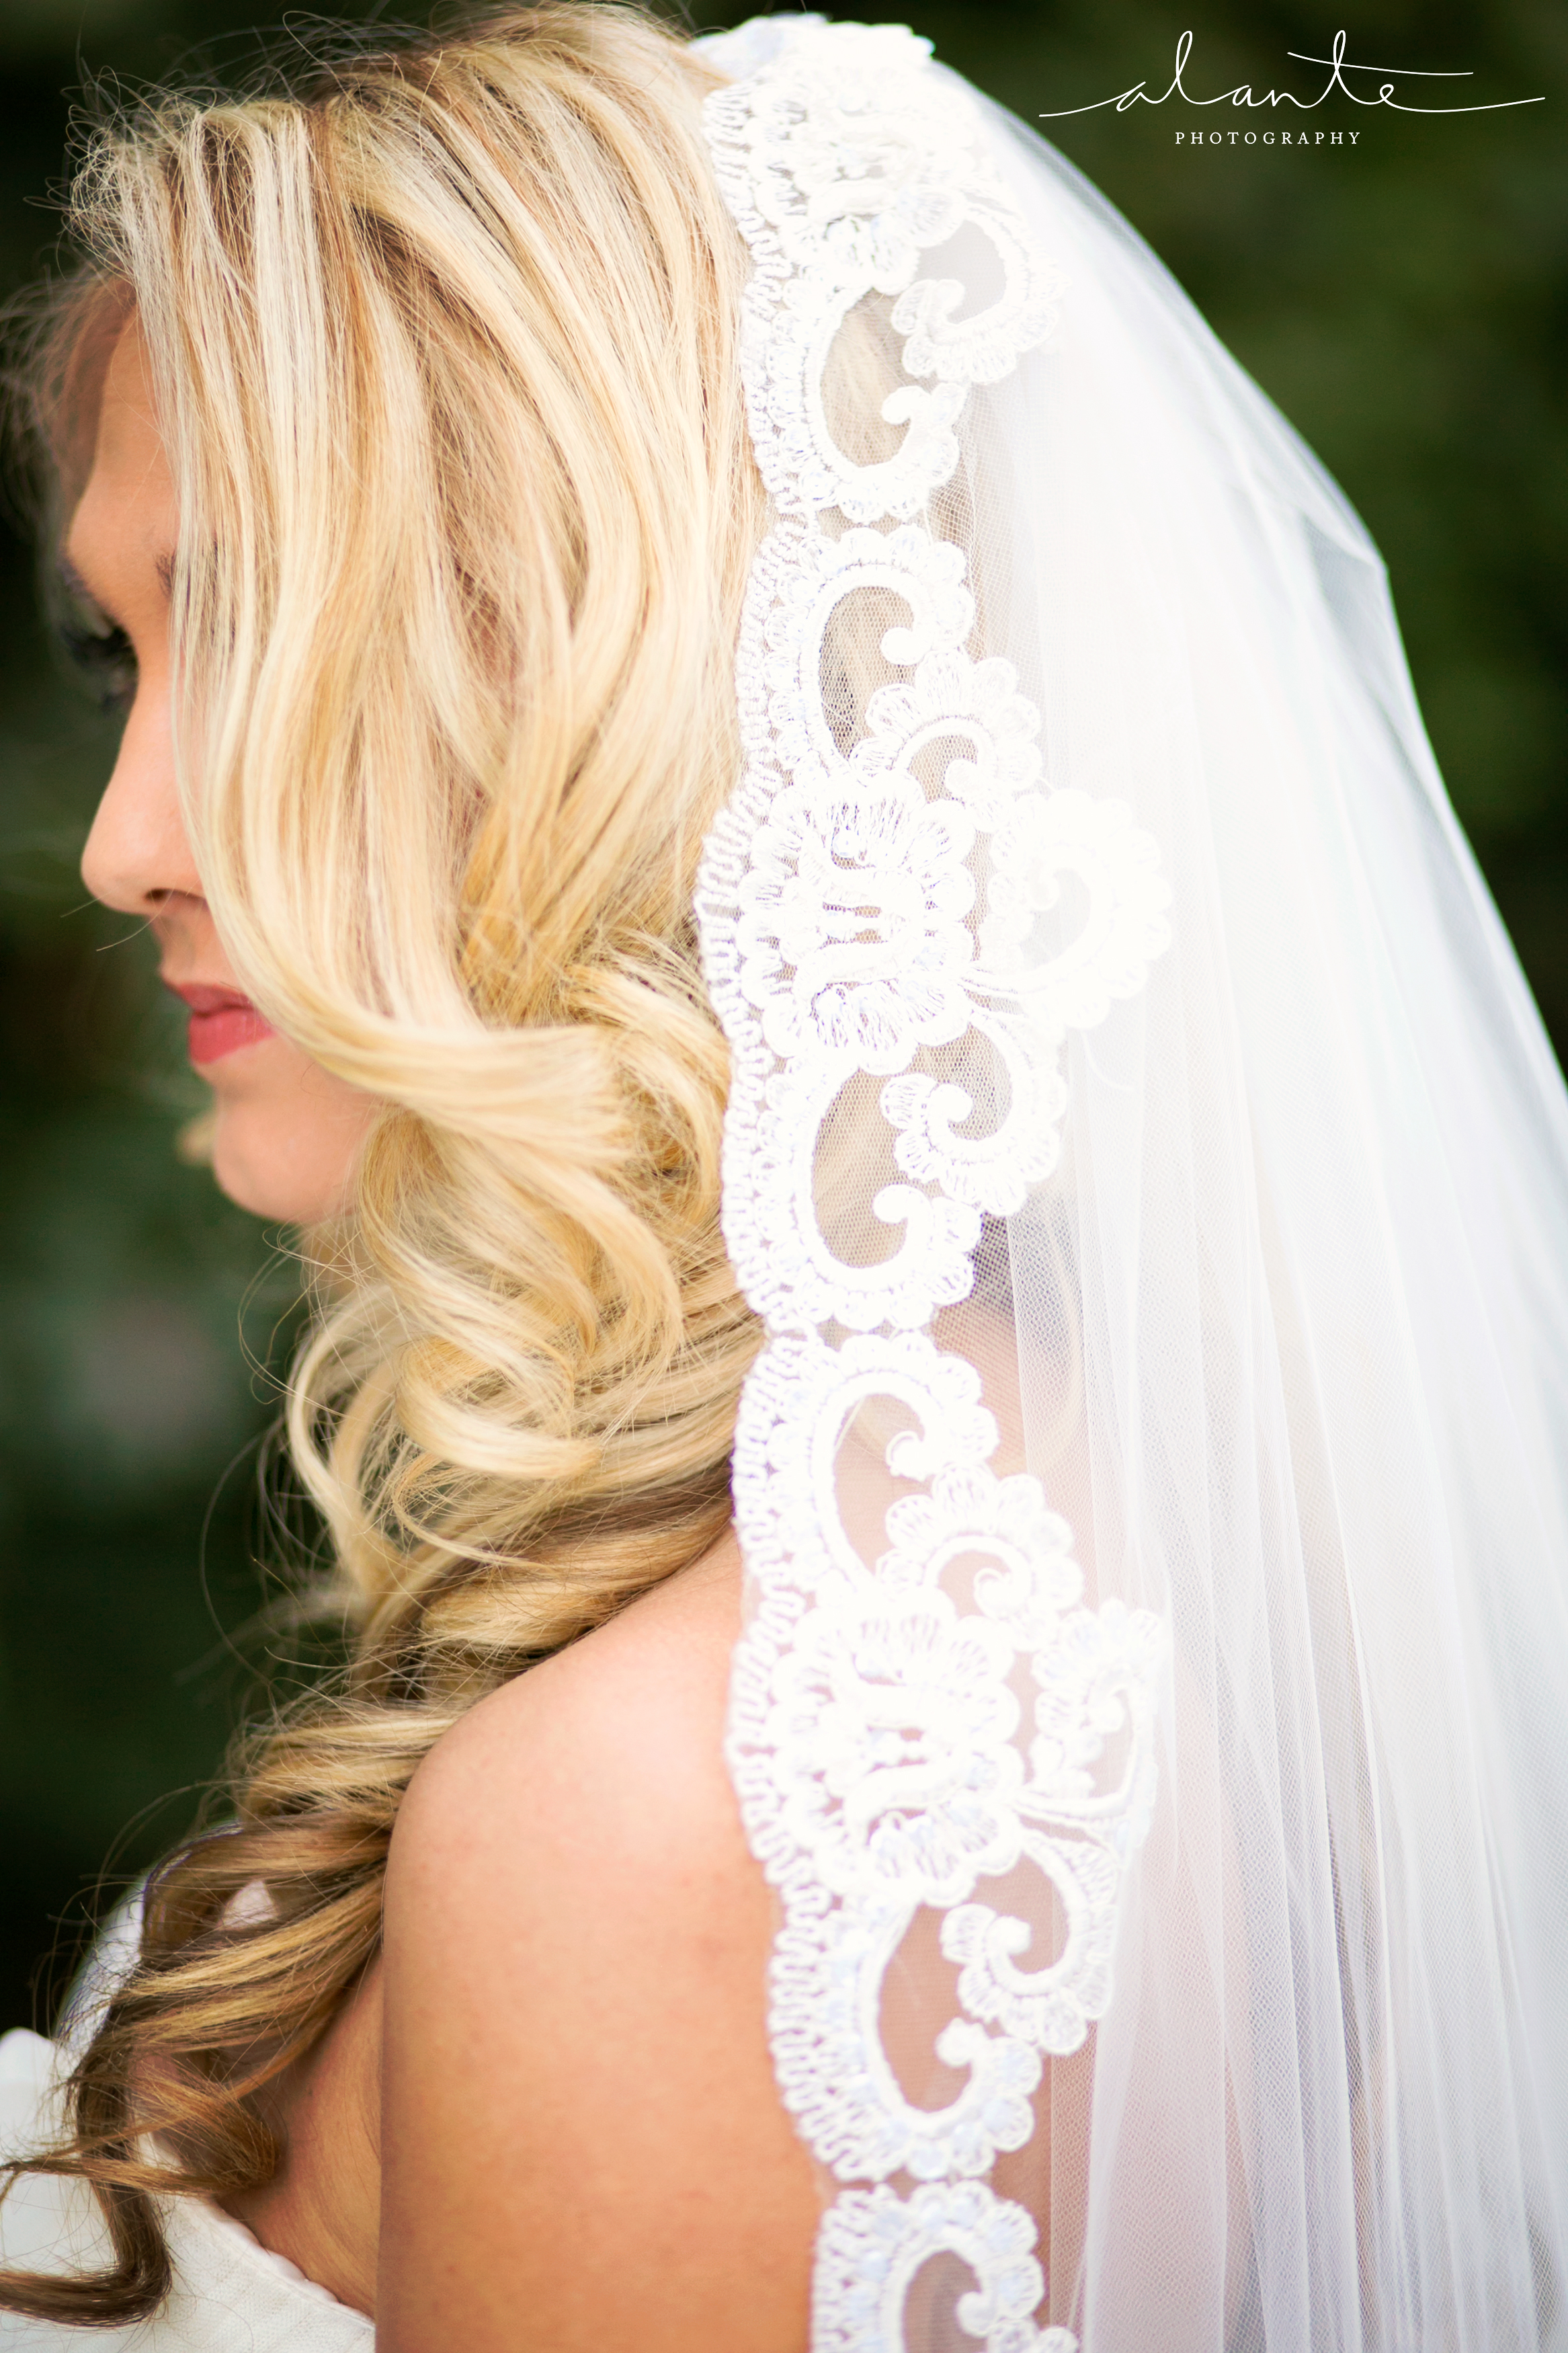 Photo Shoot Palm Springs| Palm Springs Wedding | Palms Springs Makeup Artist| Palm Springs Wedding Hair Stylist|